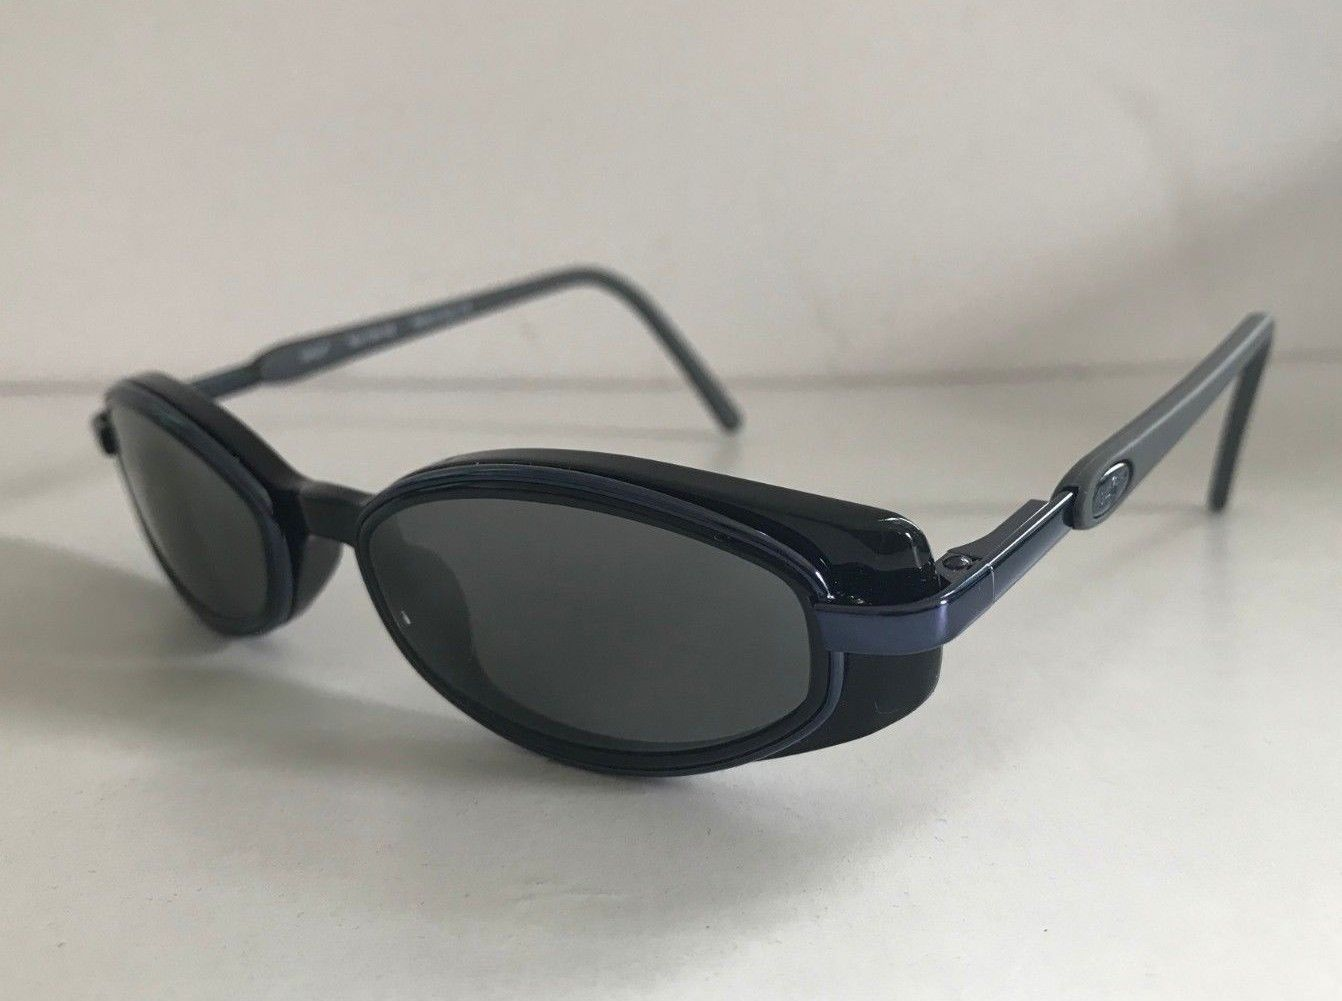 Maui Jim MJ-124-02 Mirror Lenses Designer Sunglasses with Case